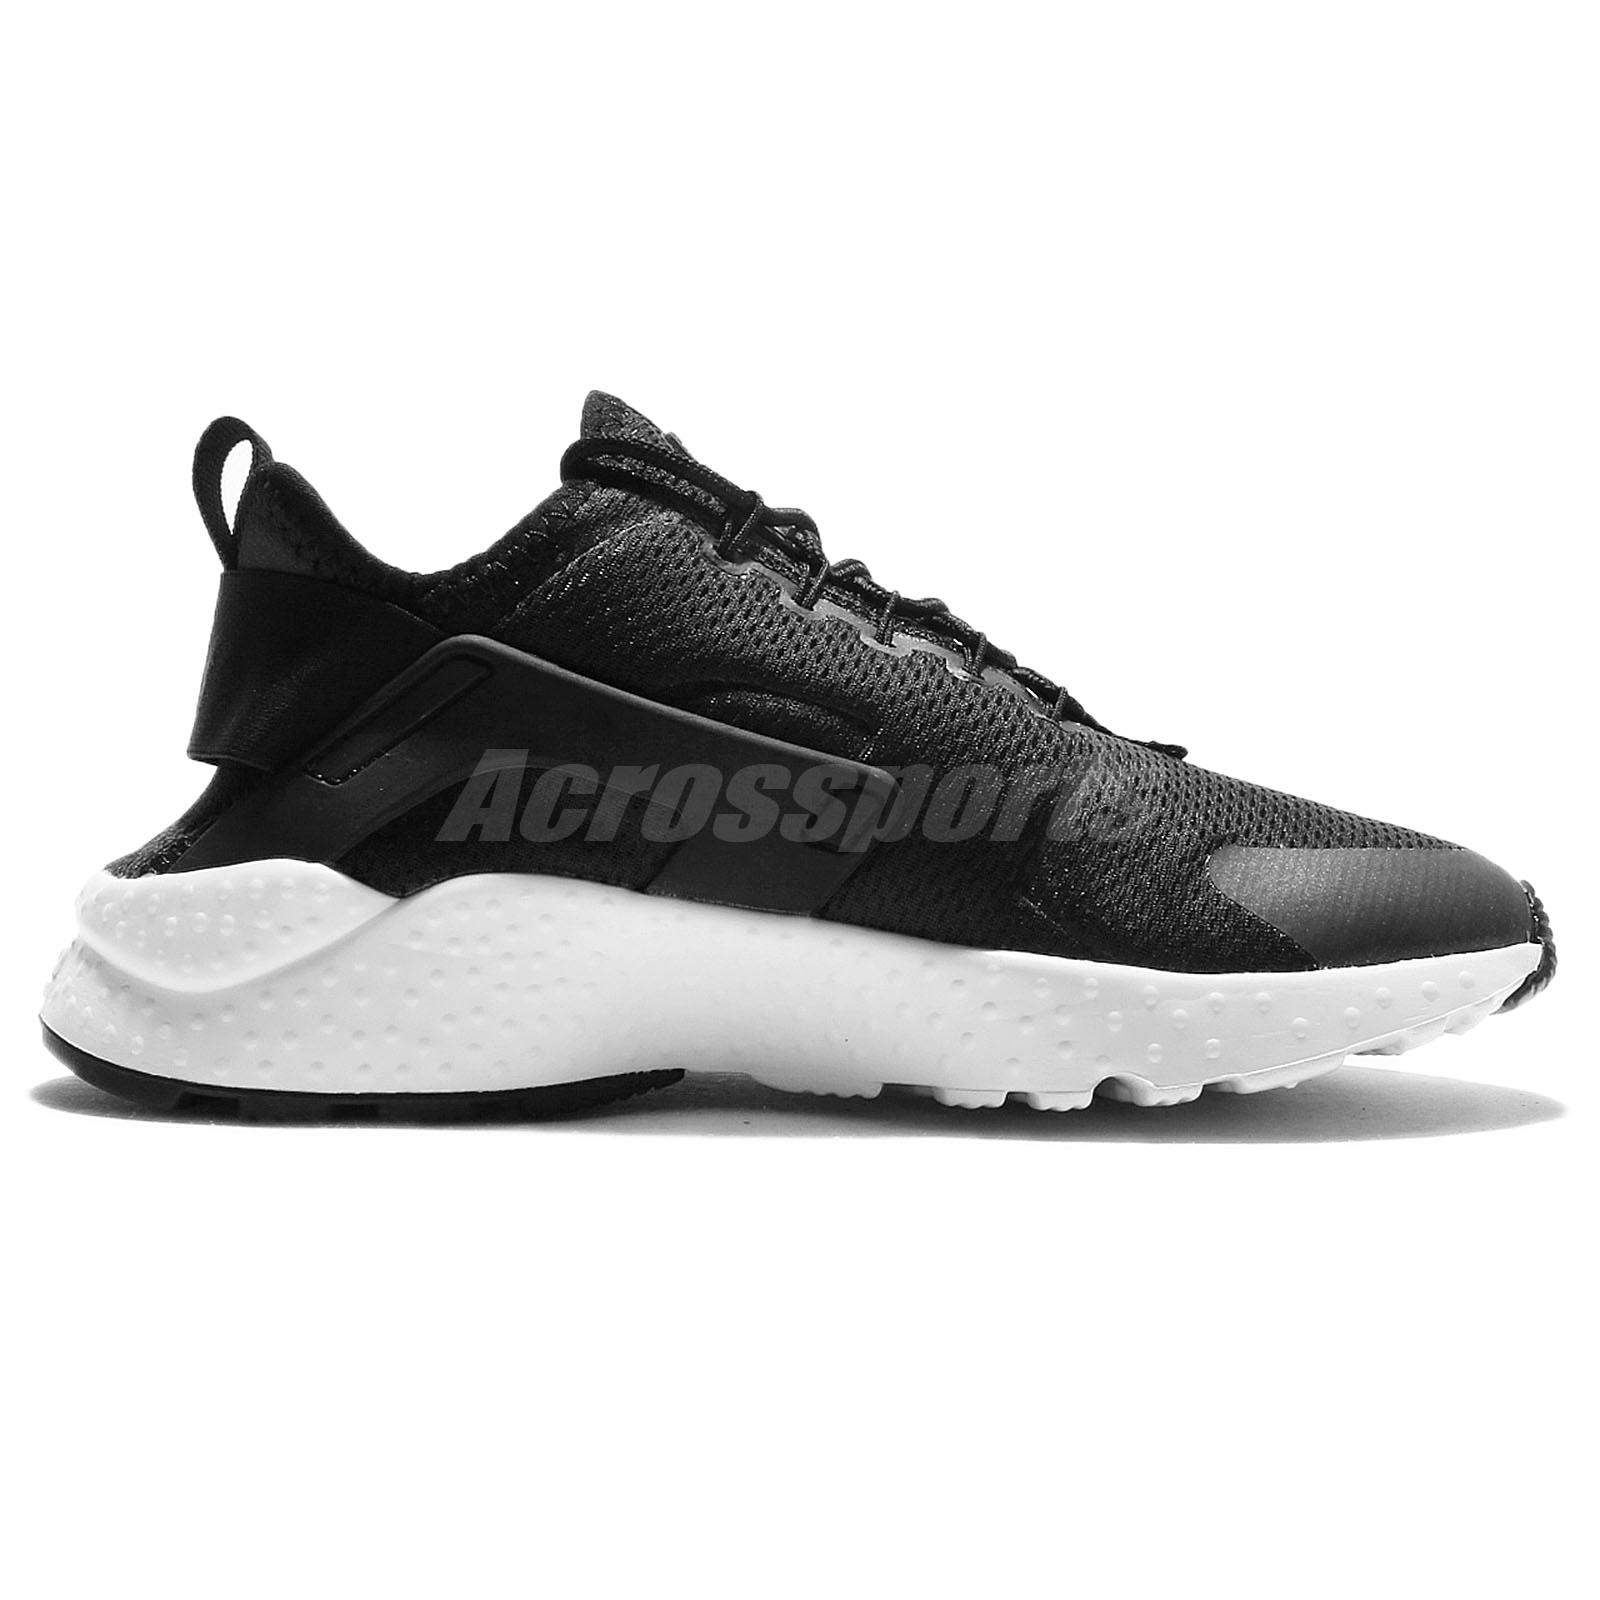 Nike Air Huarache Run Ultra Running Shoes  5b59df3c4800